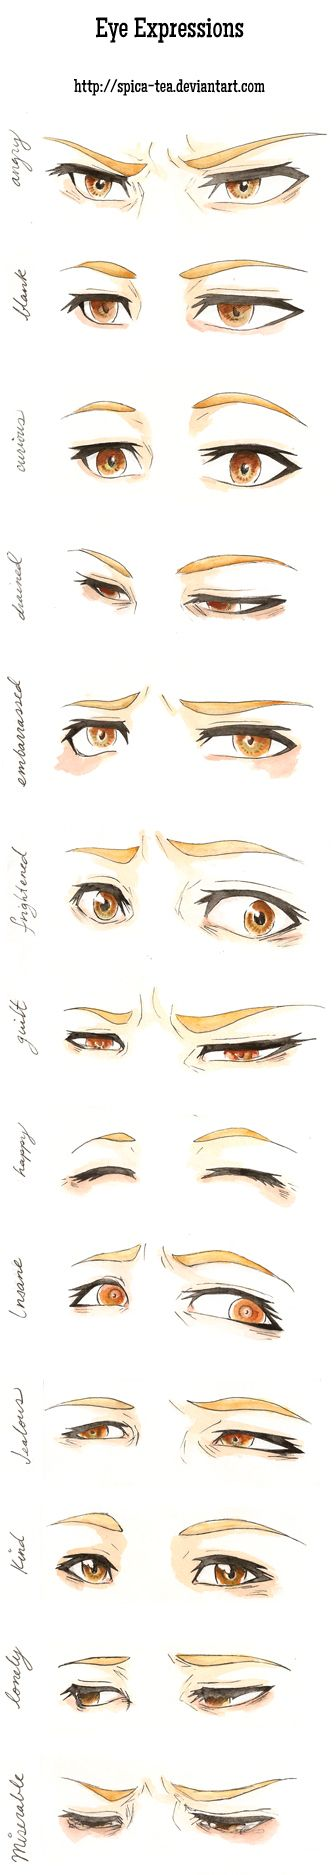 Eye expressions practice by CalSparrow on DeviantArt